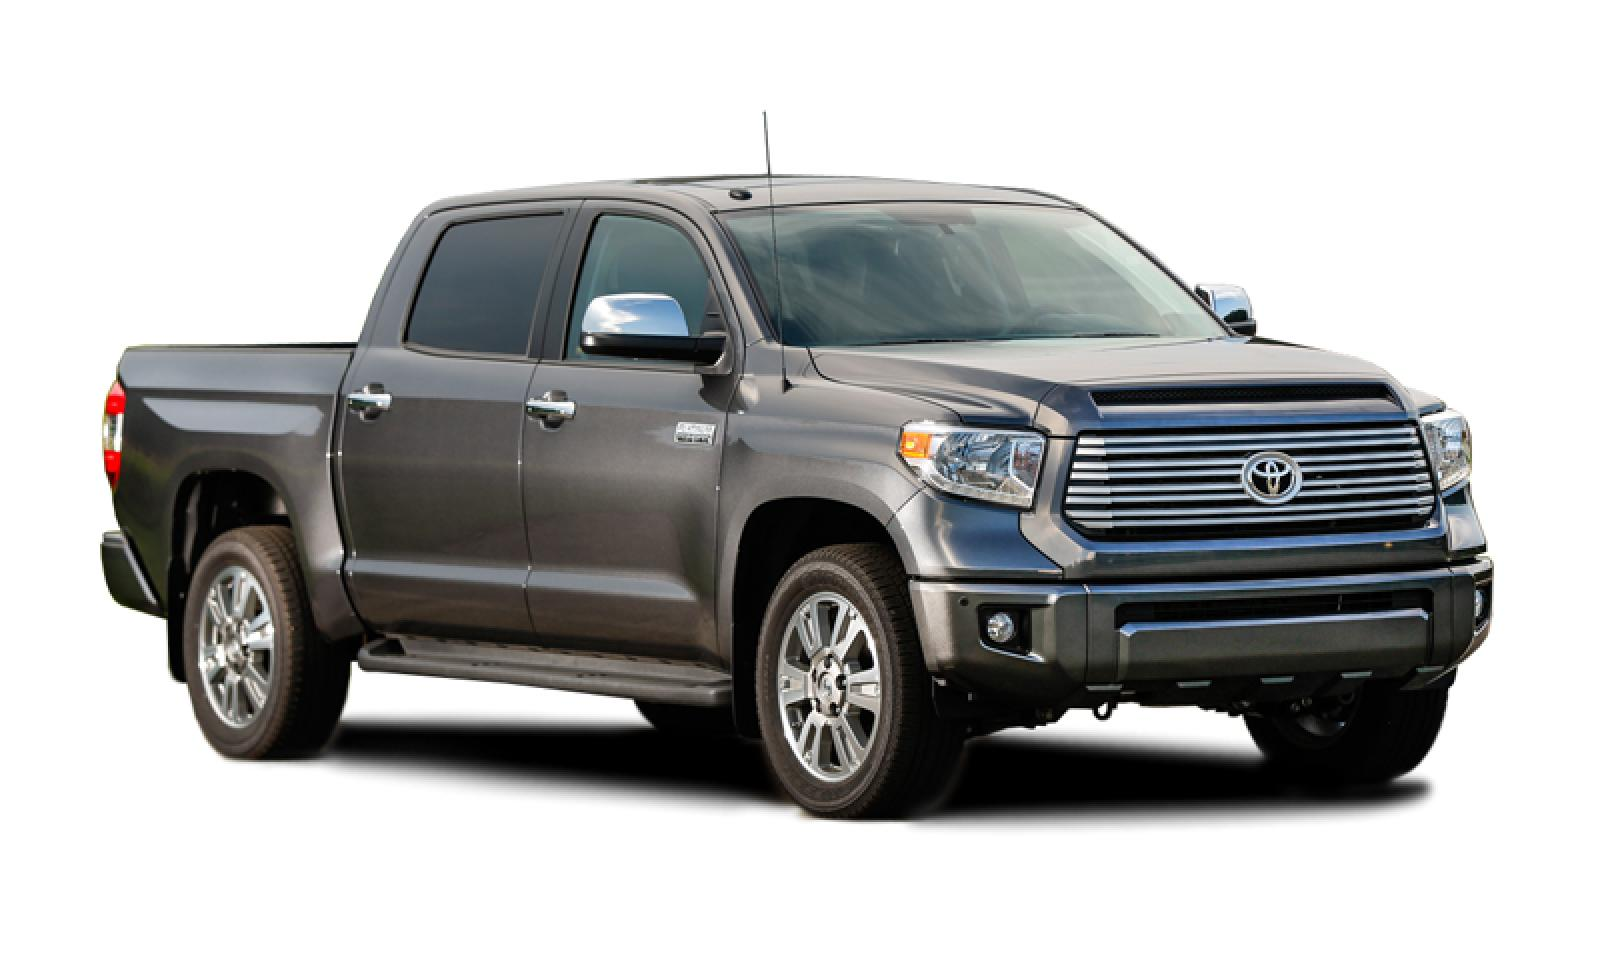 2015 toyota tundra information and photos zombiedrive. Black Bedroom Furniture Sets. Home Design Ideas